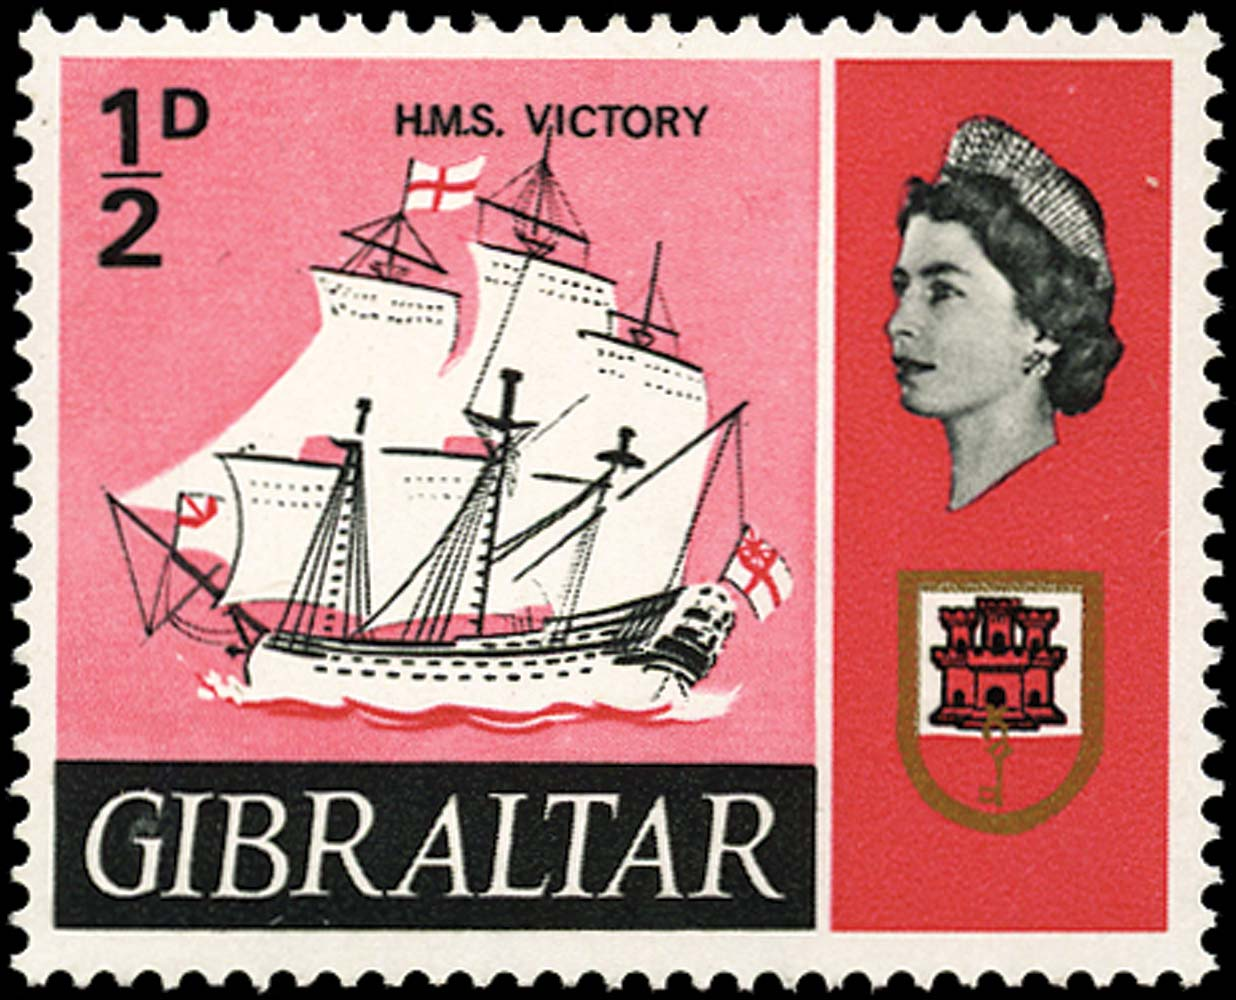 GIBRALTAR 1967  SG200a Mint ½d H.M.S. Victory error grey omitted unmounted